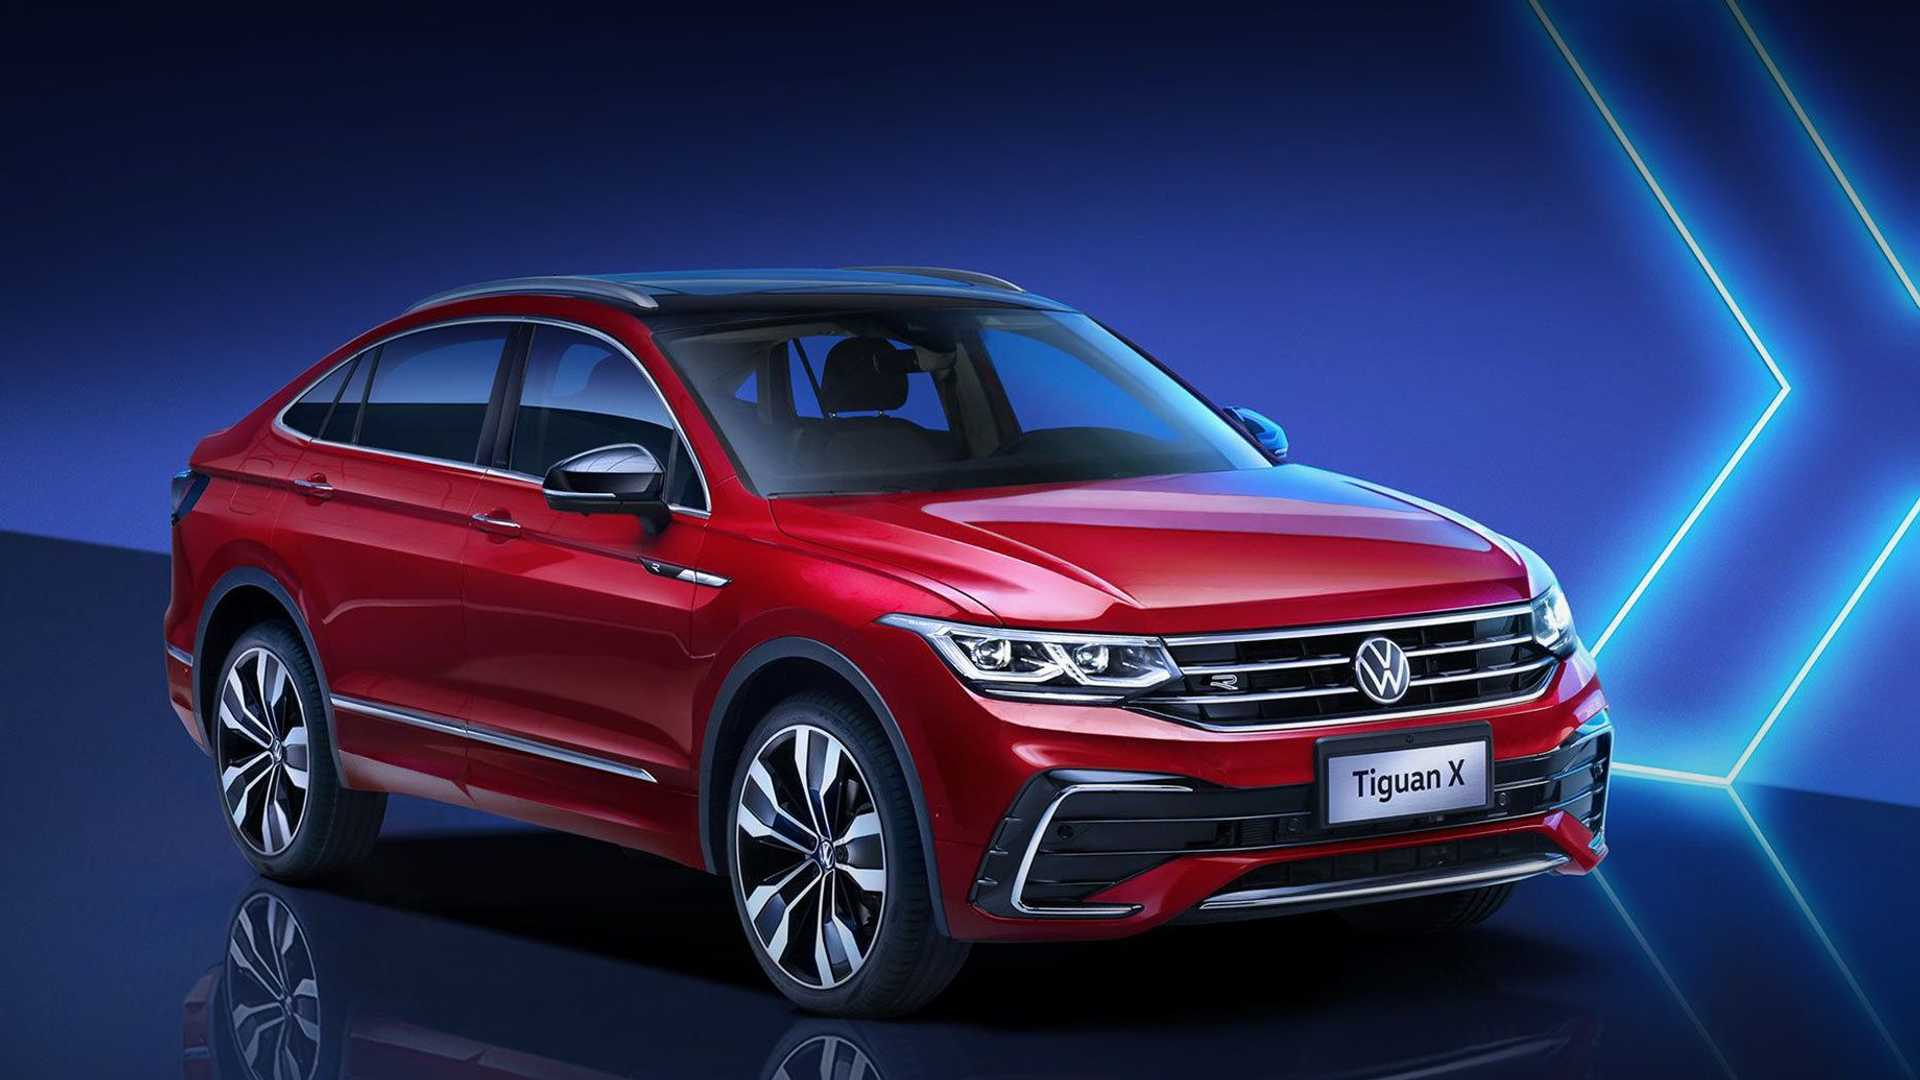 2021 Volkswagen Tiguan X coupe-styled SUV revealed in ...